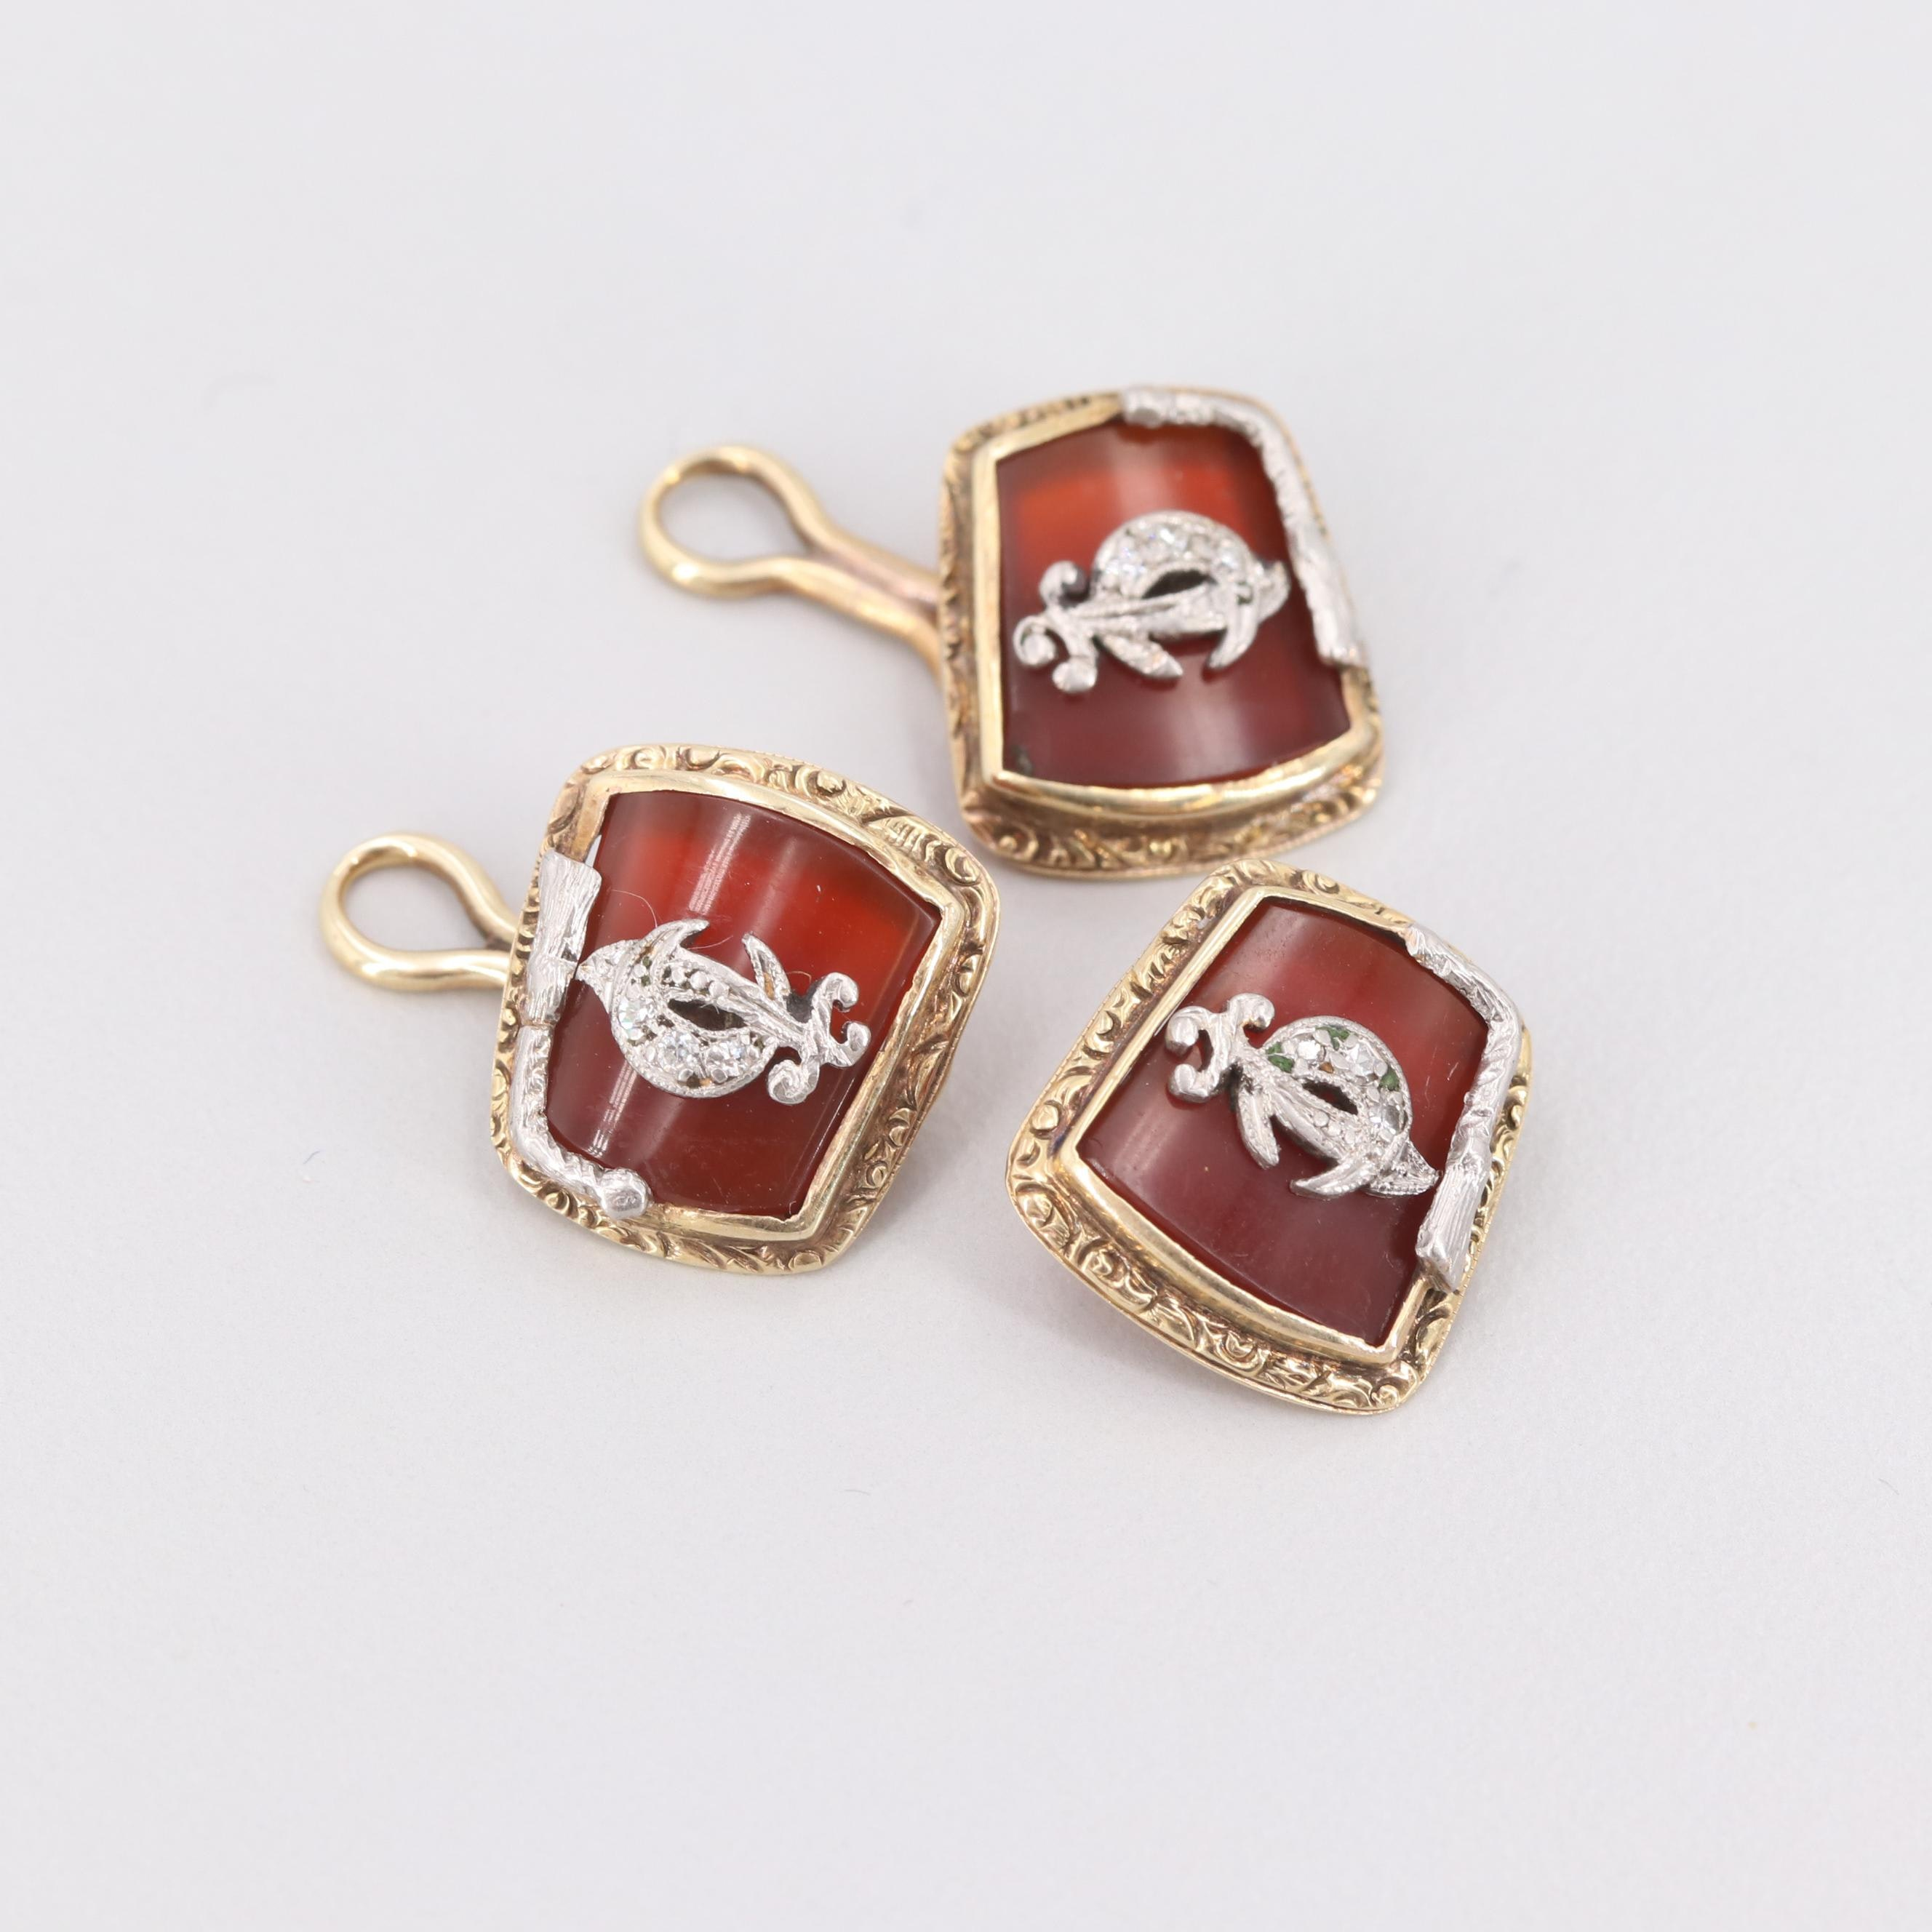 Vintage 14K Yellow Gold and Platinum Carnelian and Diamond Shriner's Cufflinks